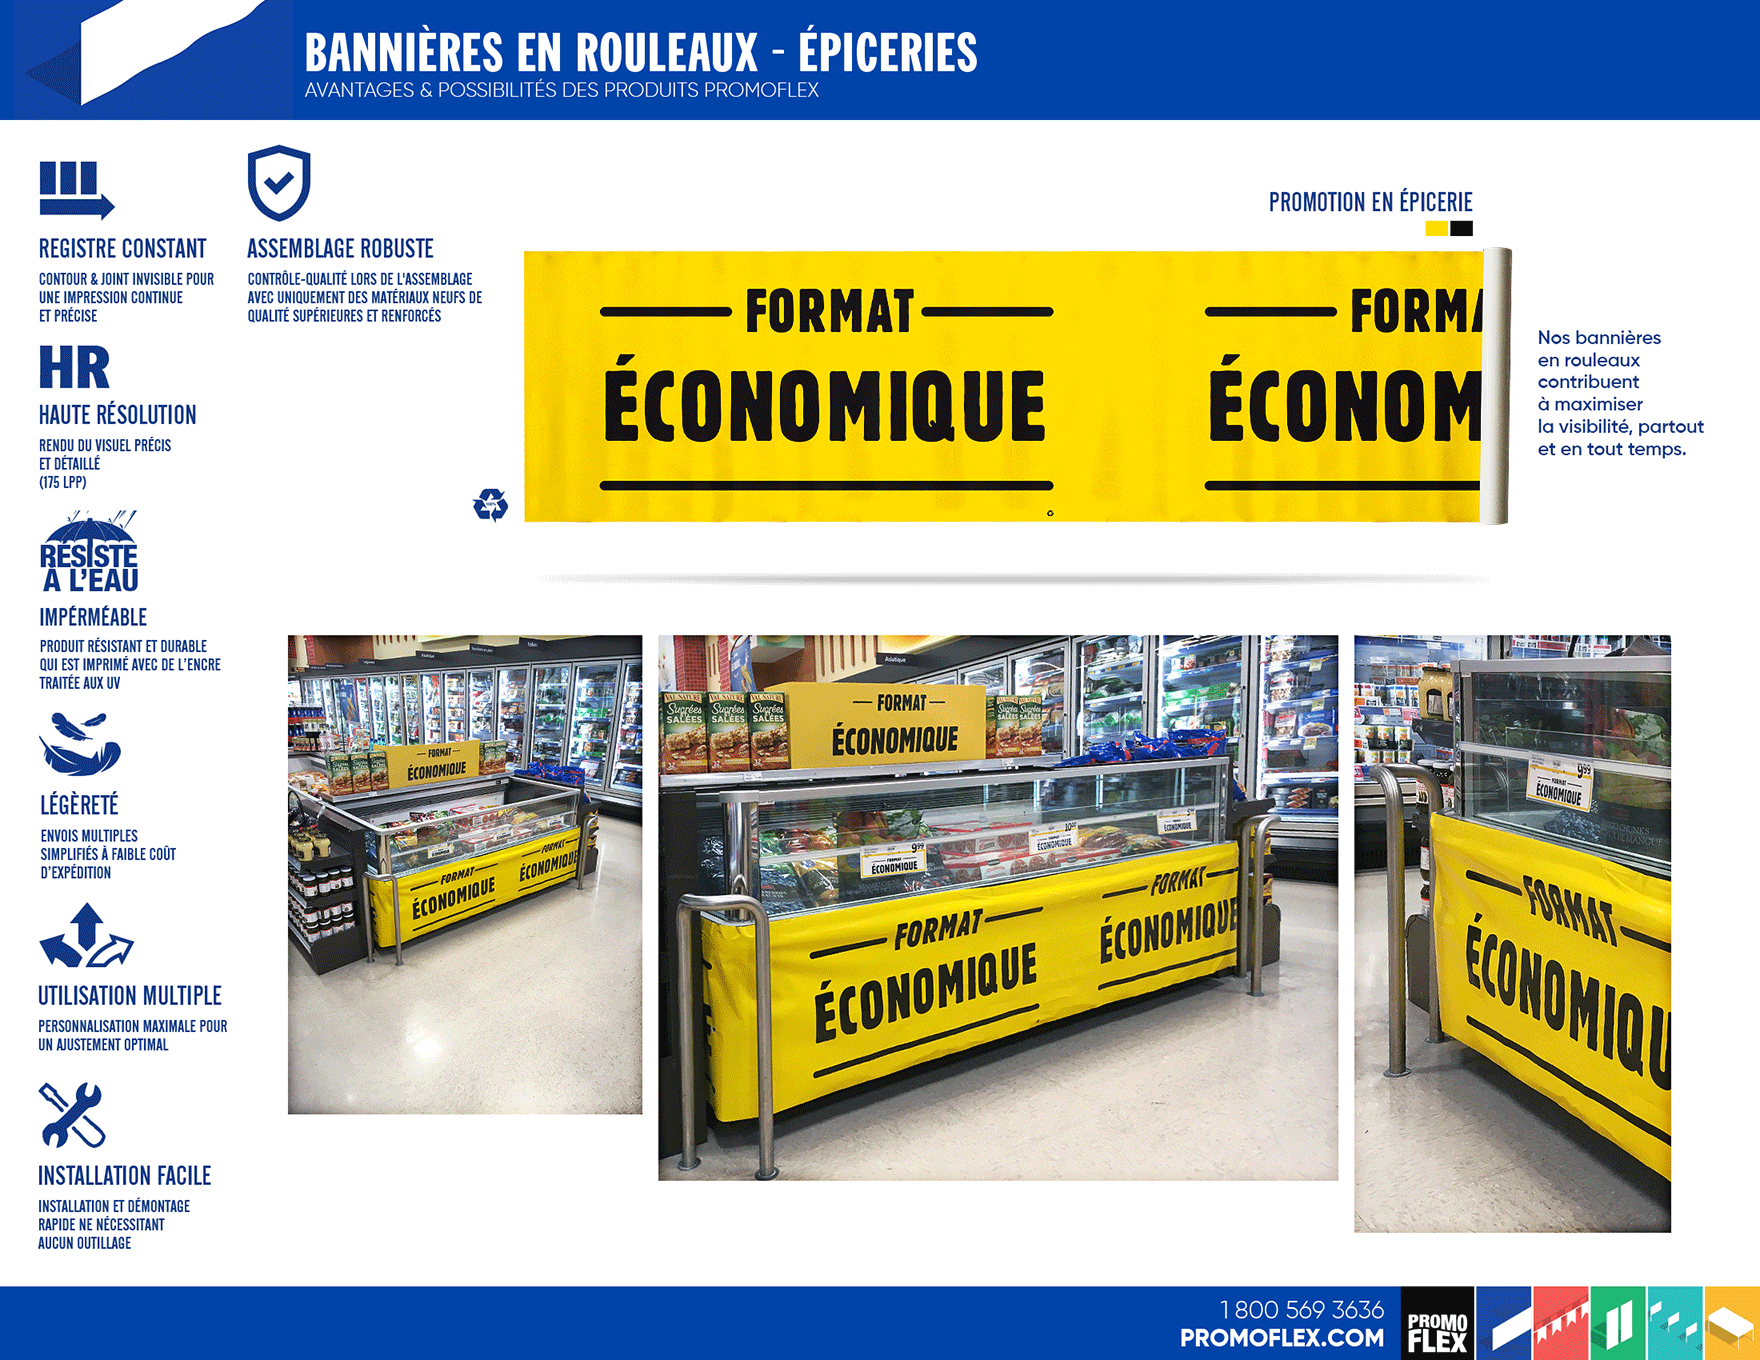 roll-banners-grocery-stores-fr-9n.png (570 KB)